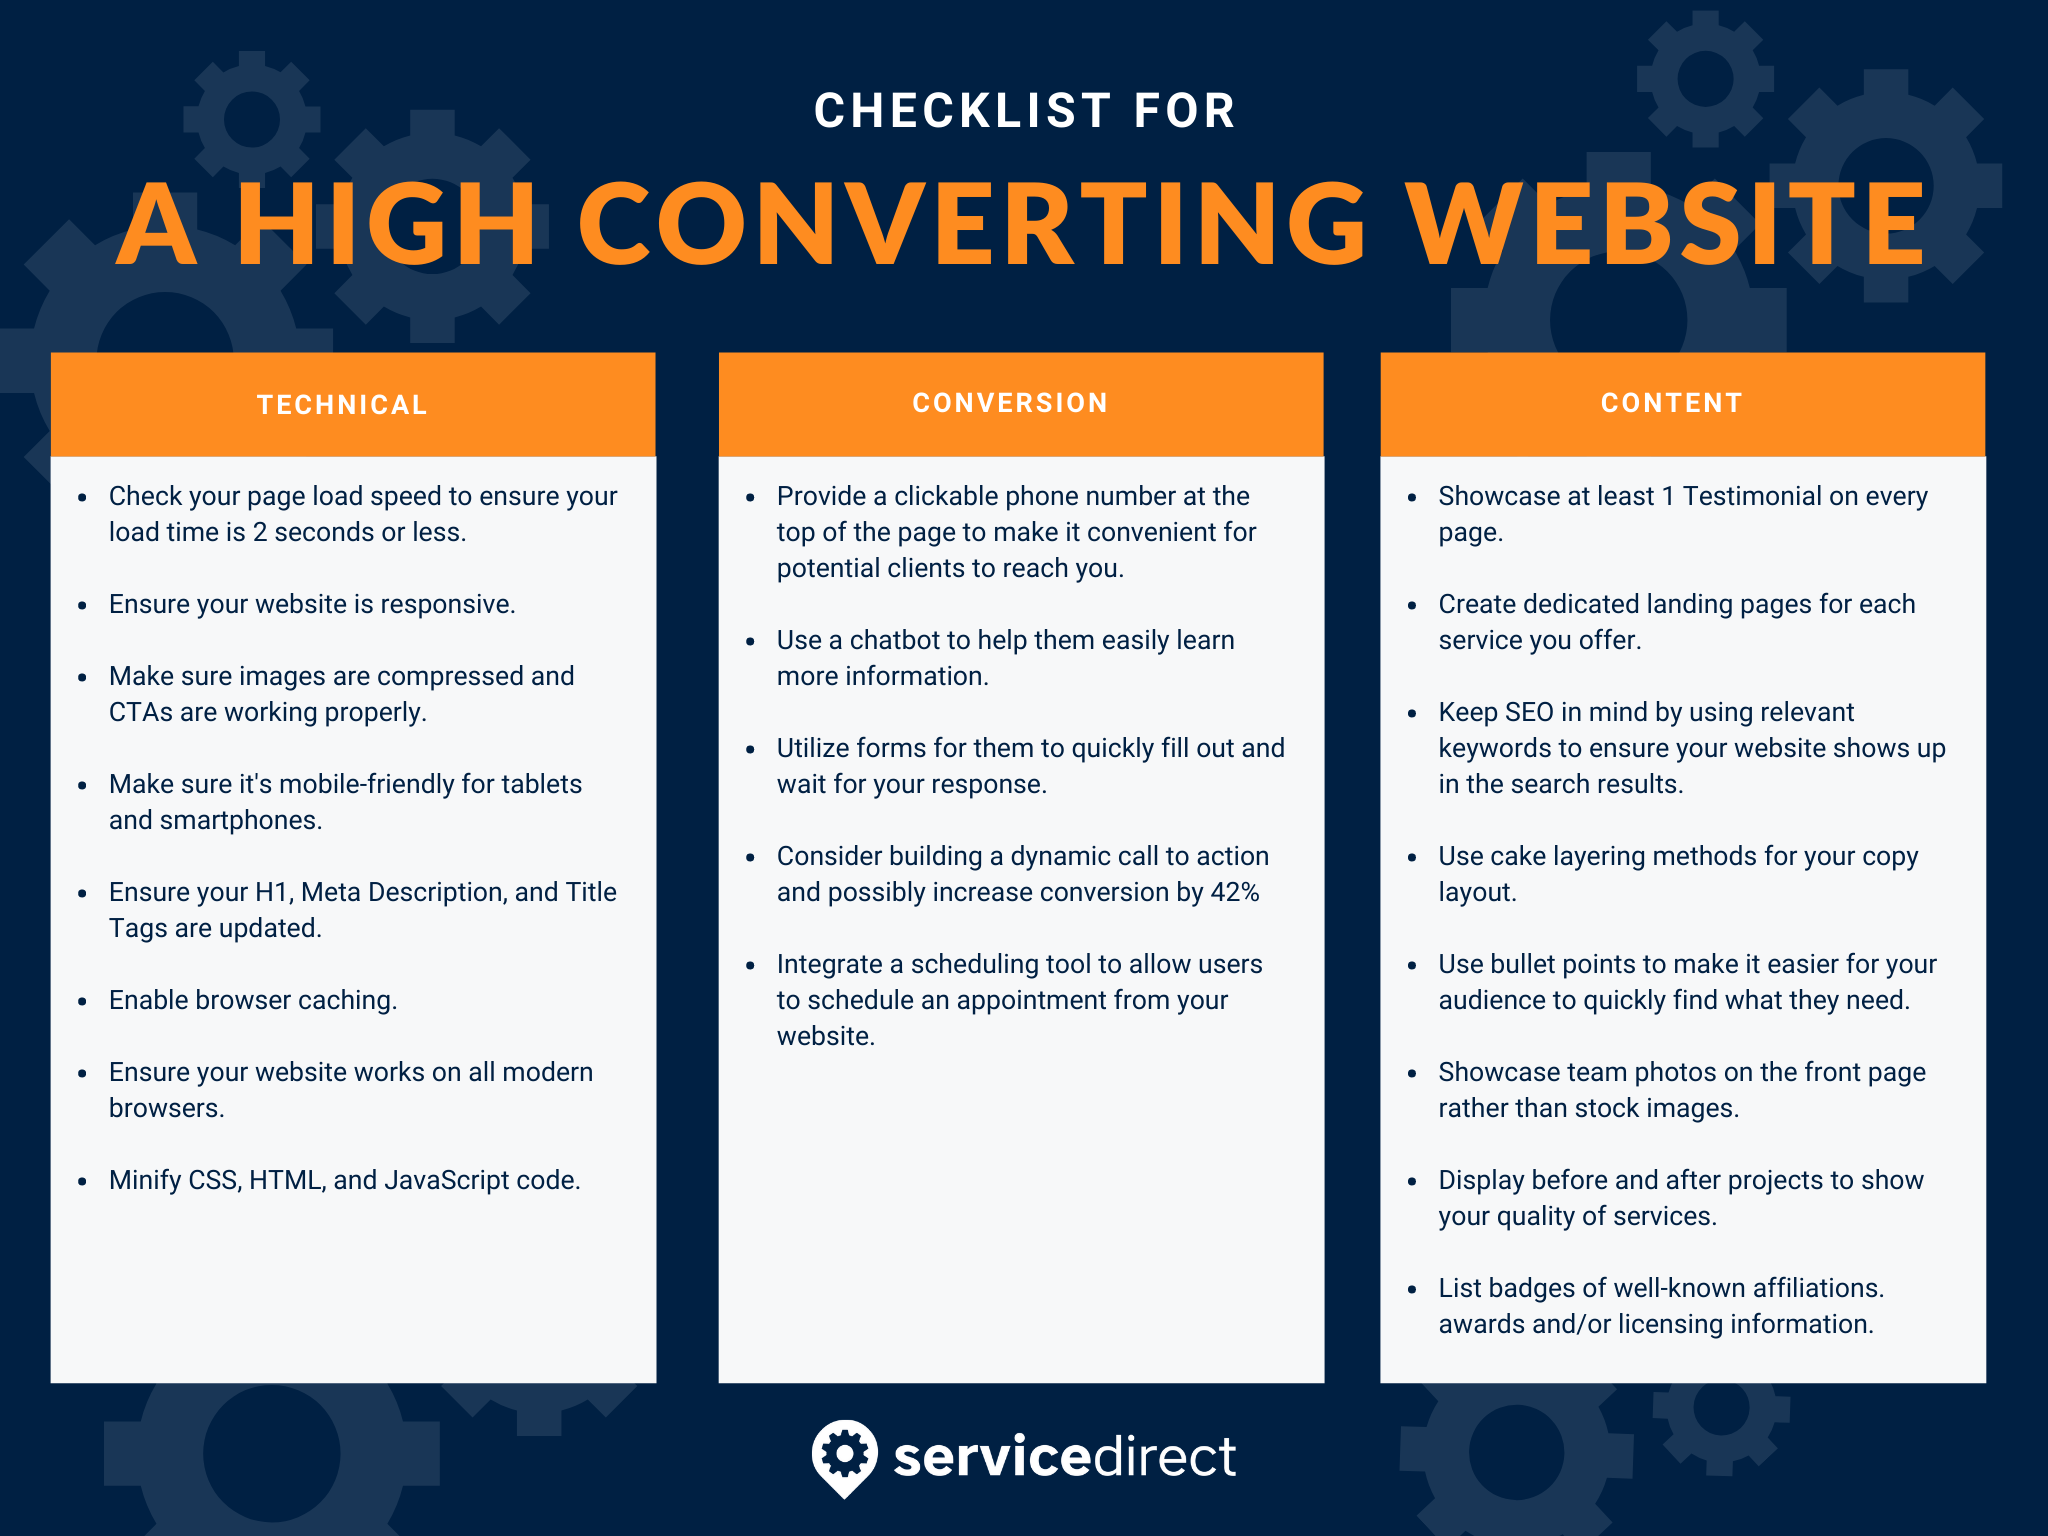 SD_Resources_Guide_Checklist_High_Converting_Website_Ch6_v2